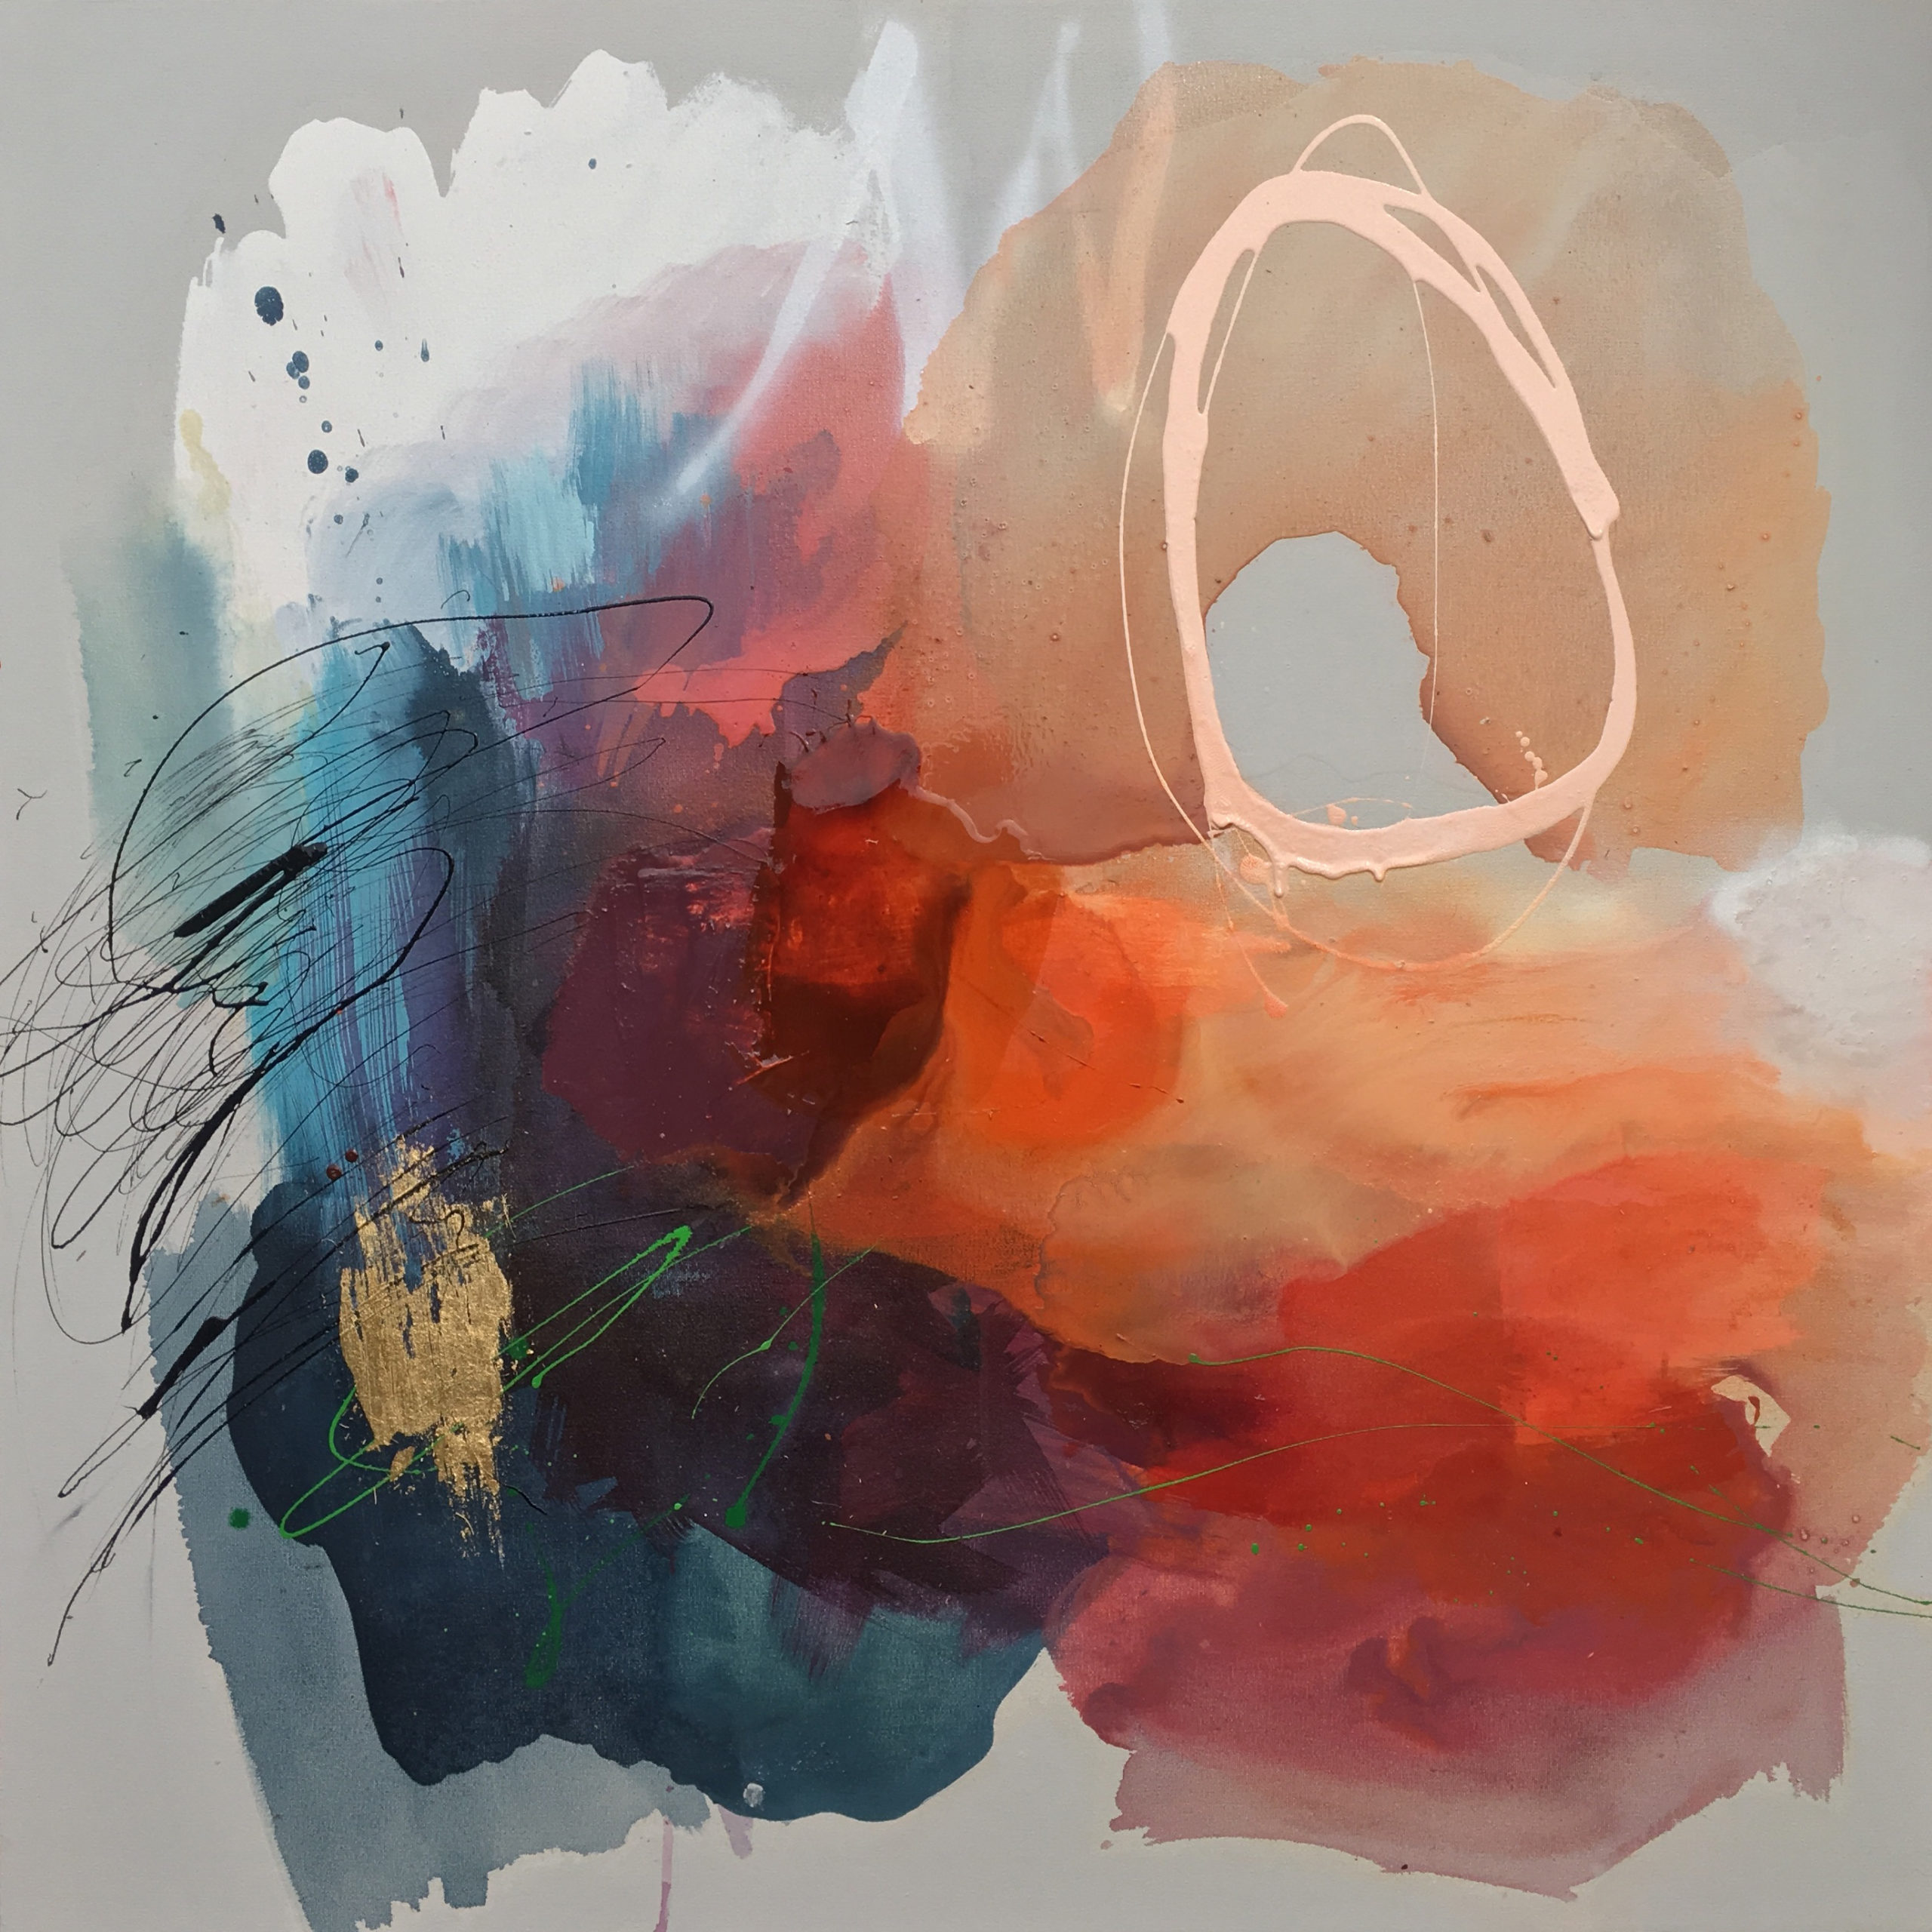 Vicky Sanders Abstract - Peaches and Clouds